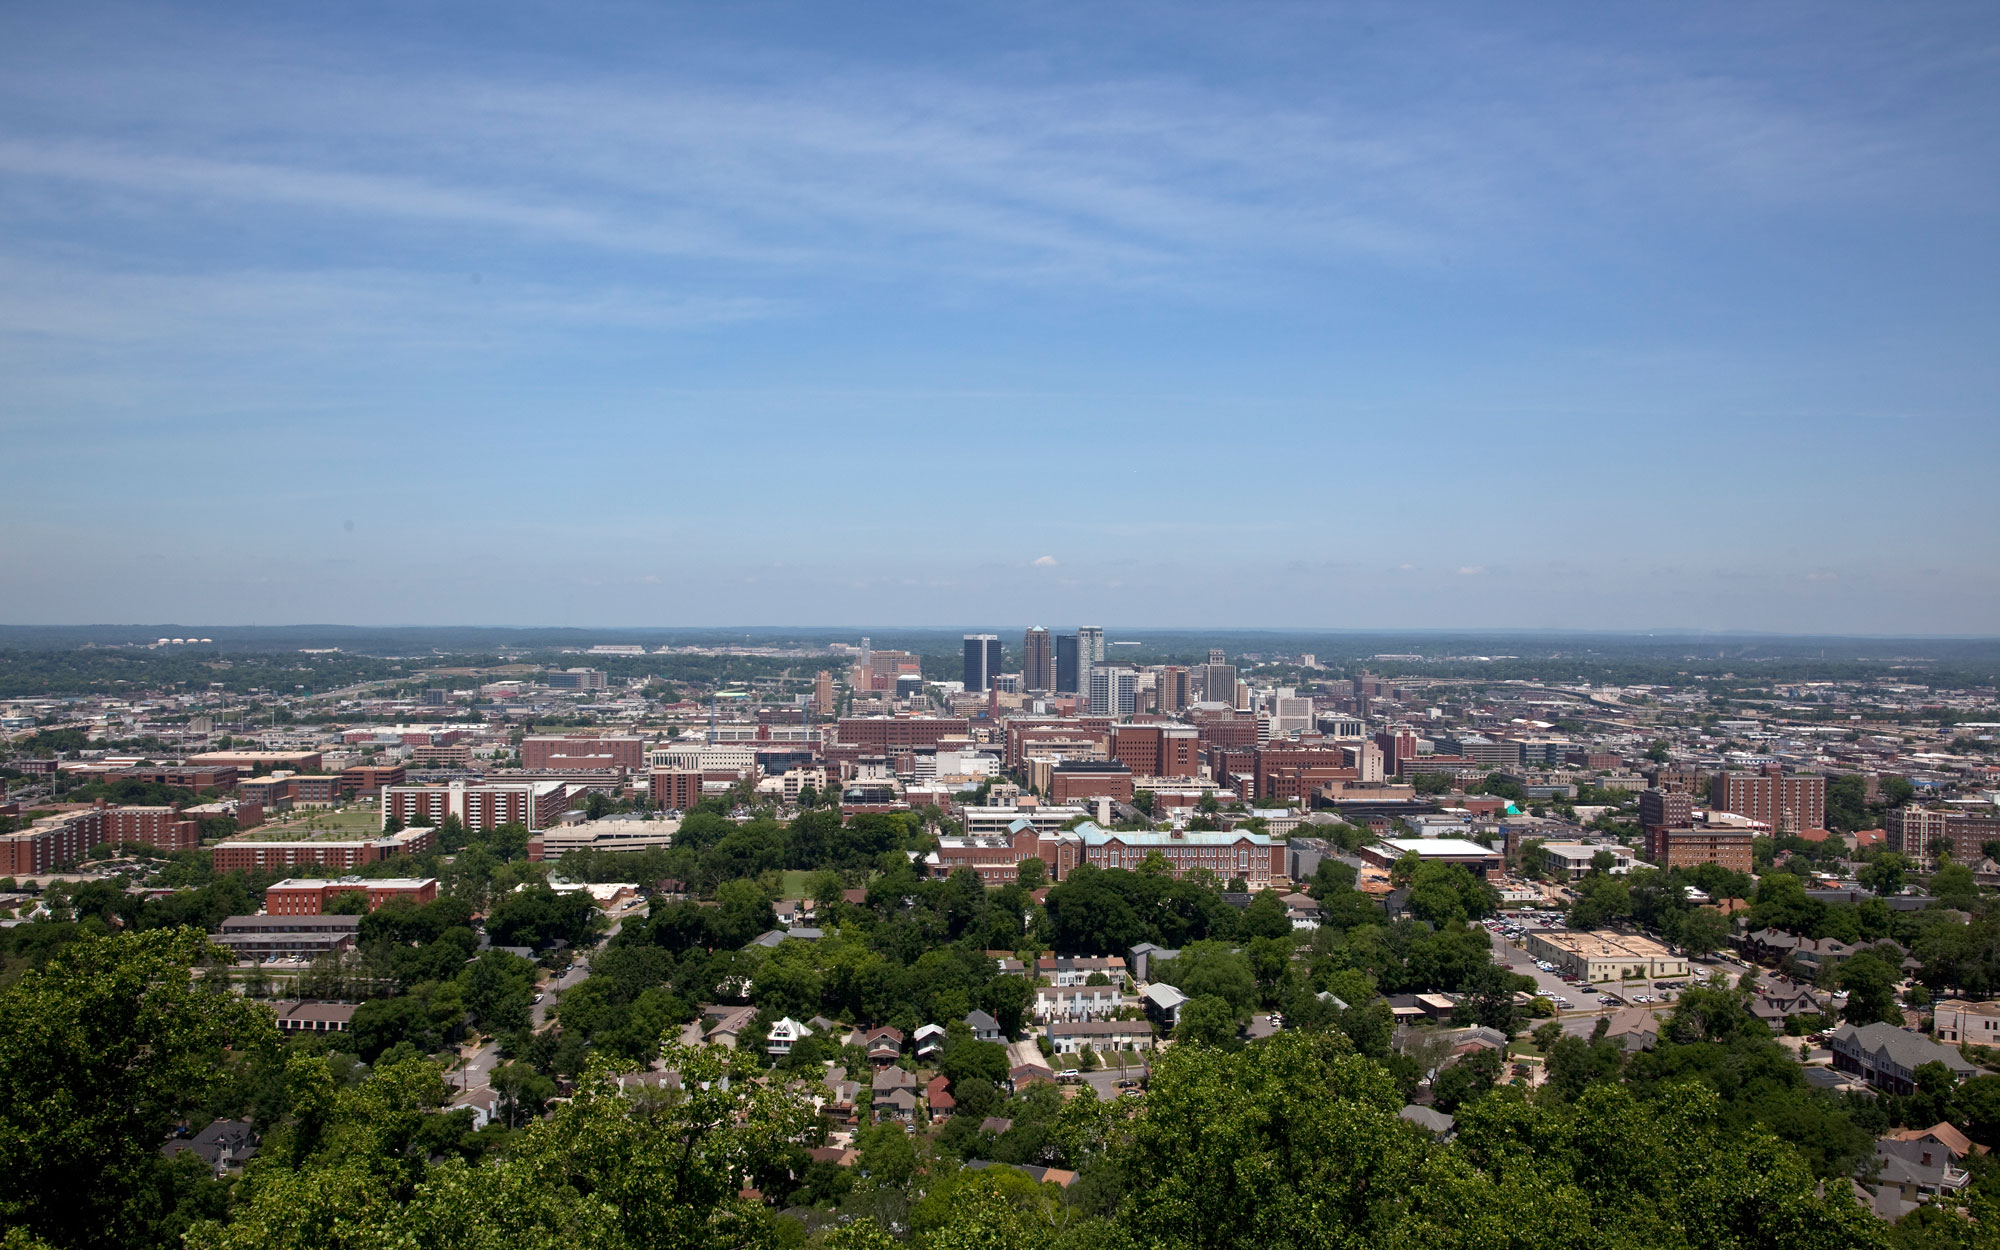 Alabama from the Vulcan Statue